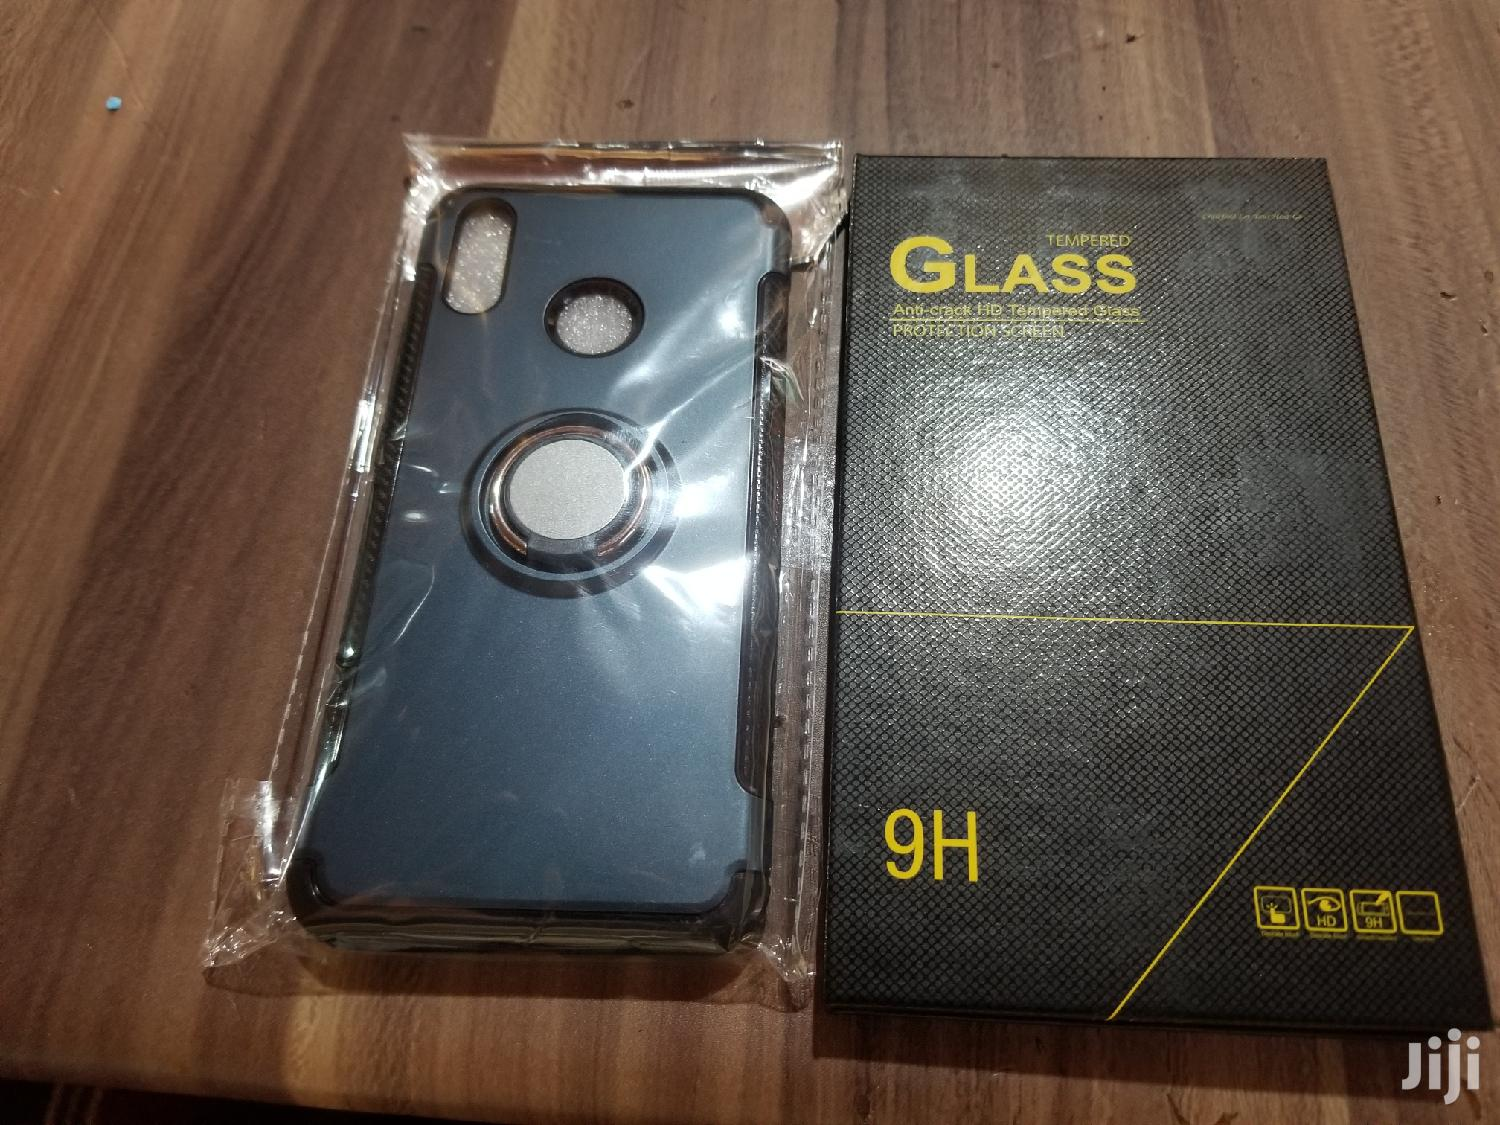 Huawei Nova 3i Case And Glass Protector For Sale